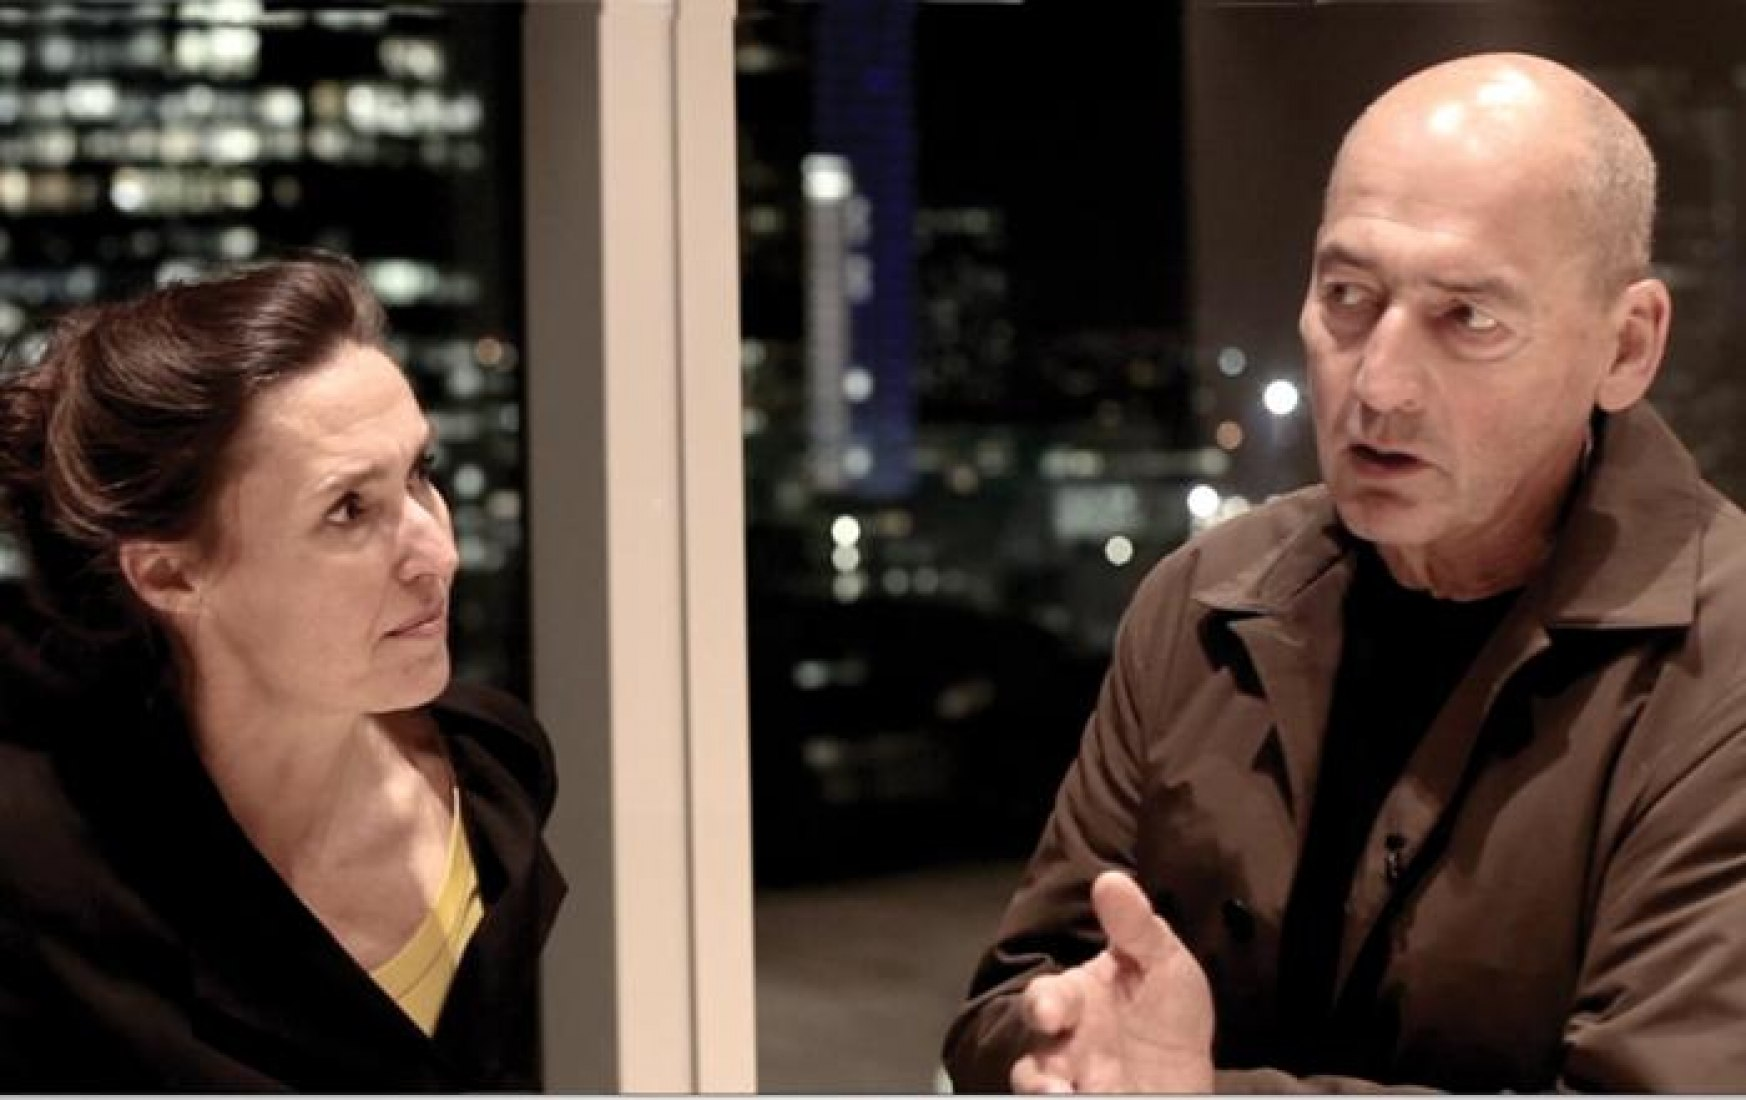 Ellen Van Loon and Rem Koolhaas.